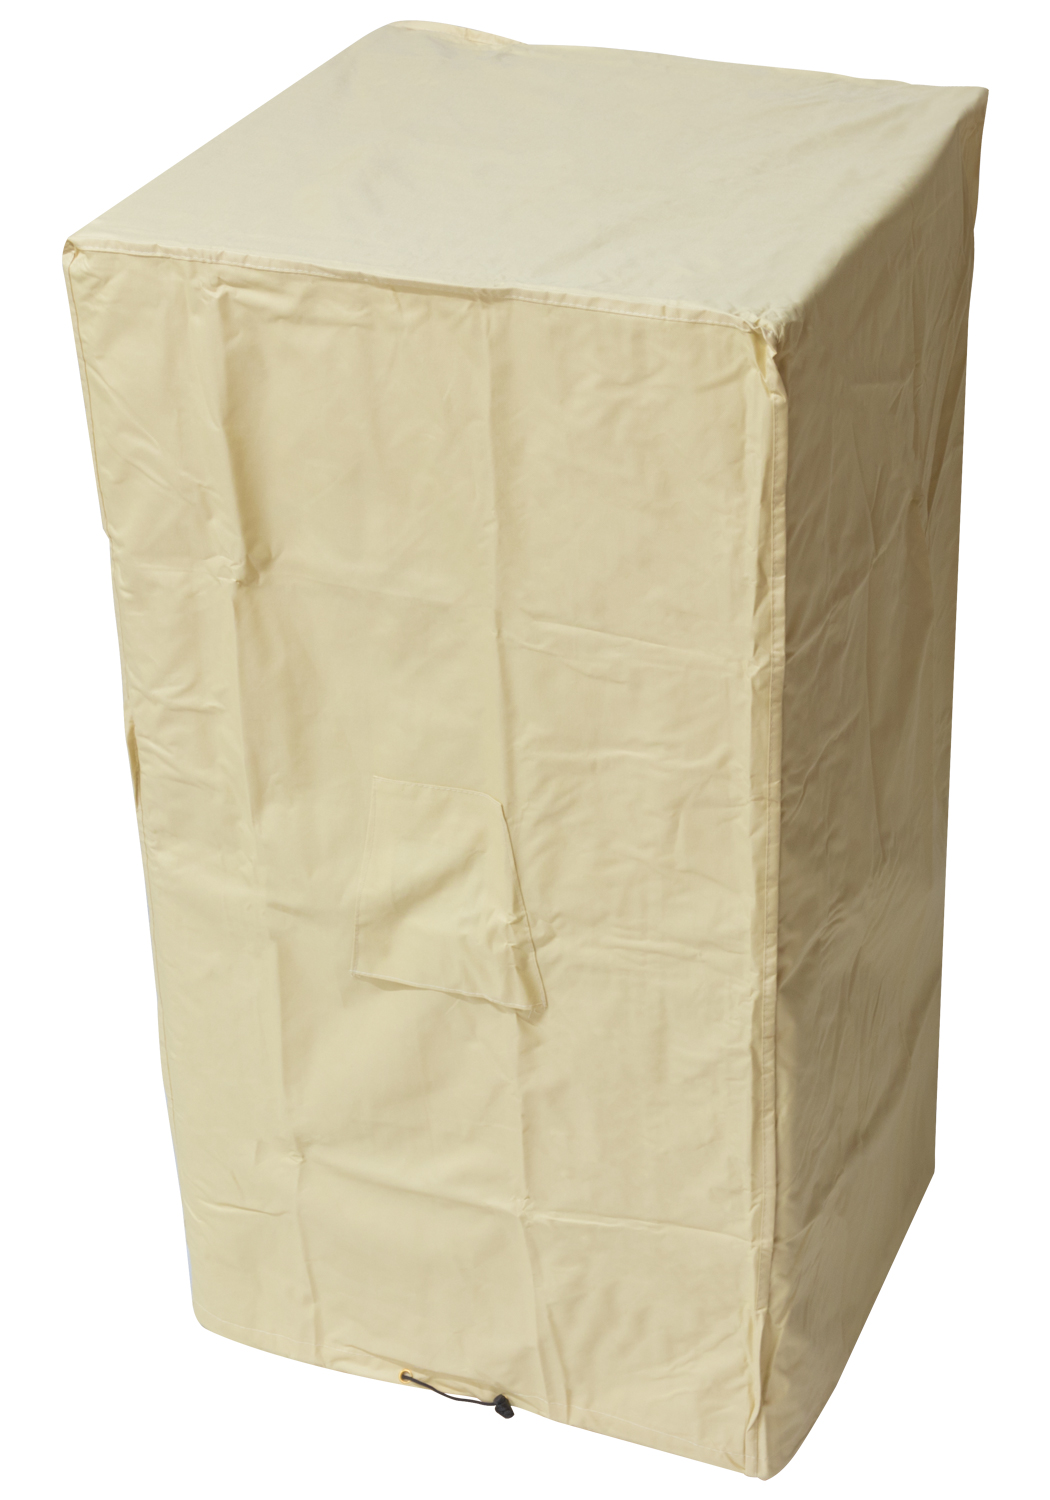 Oxbridge stacking chair cover sand covers outdoor value for Oxbridge outdoor furniture covers